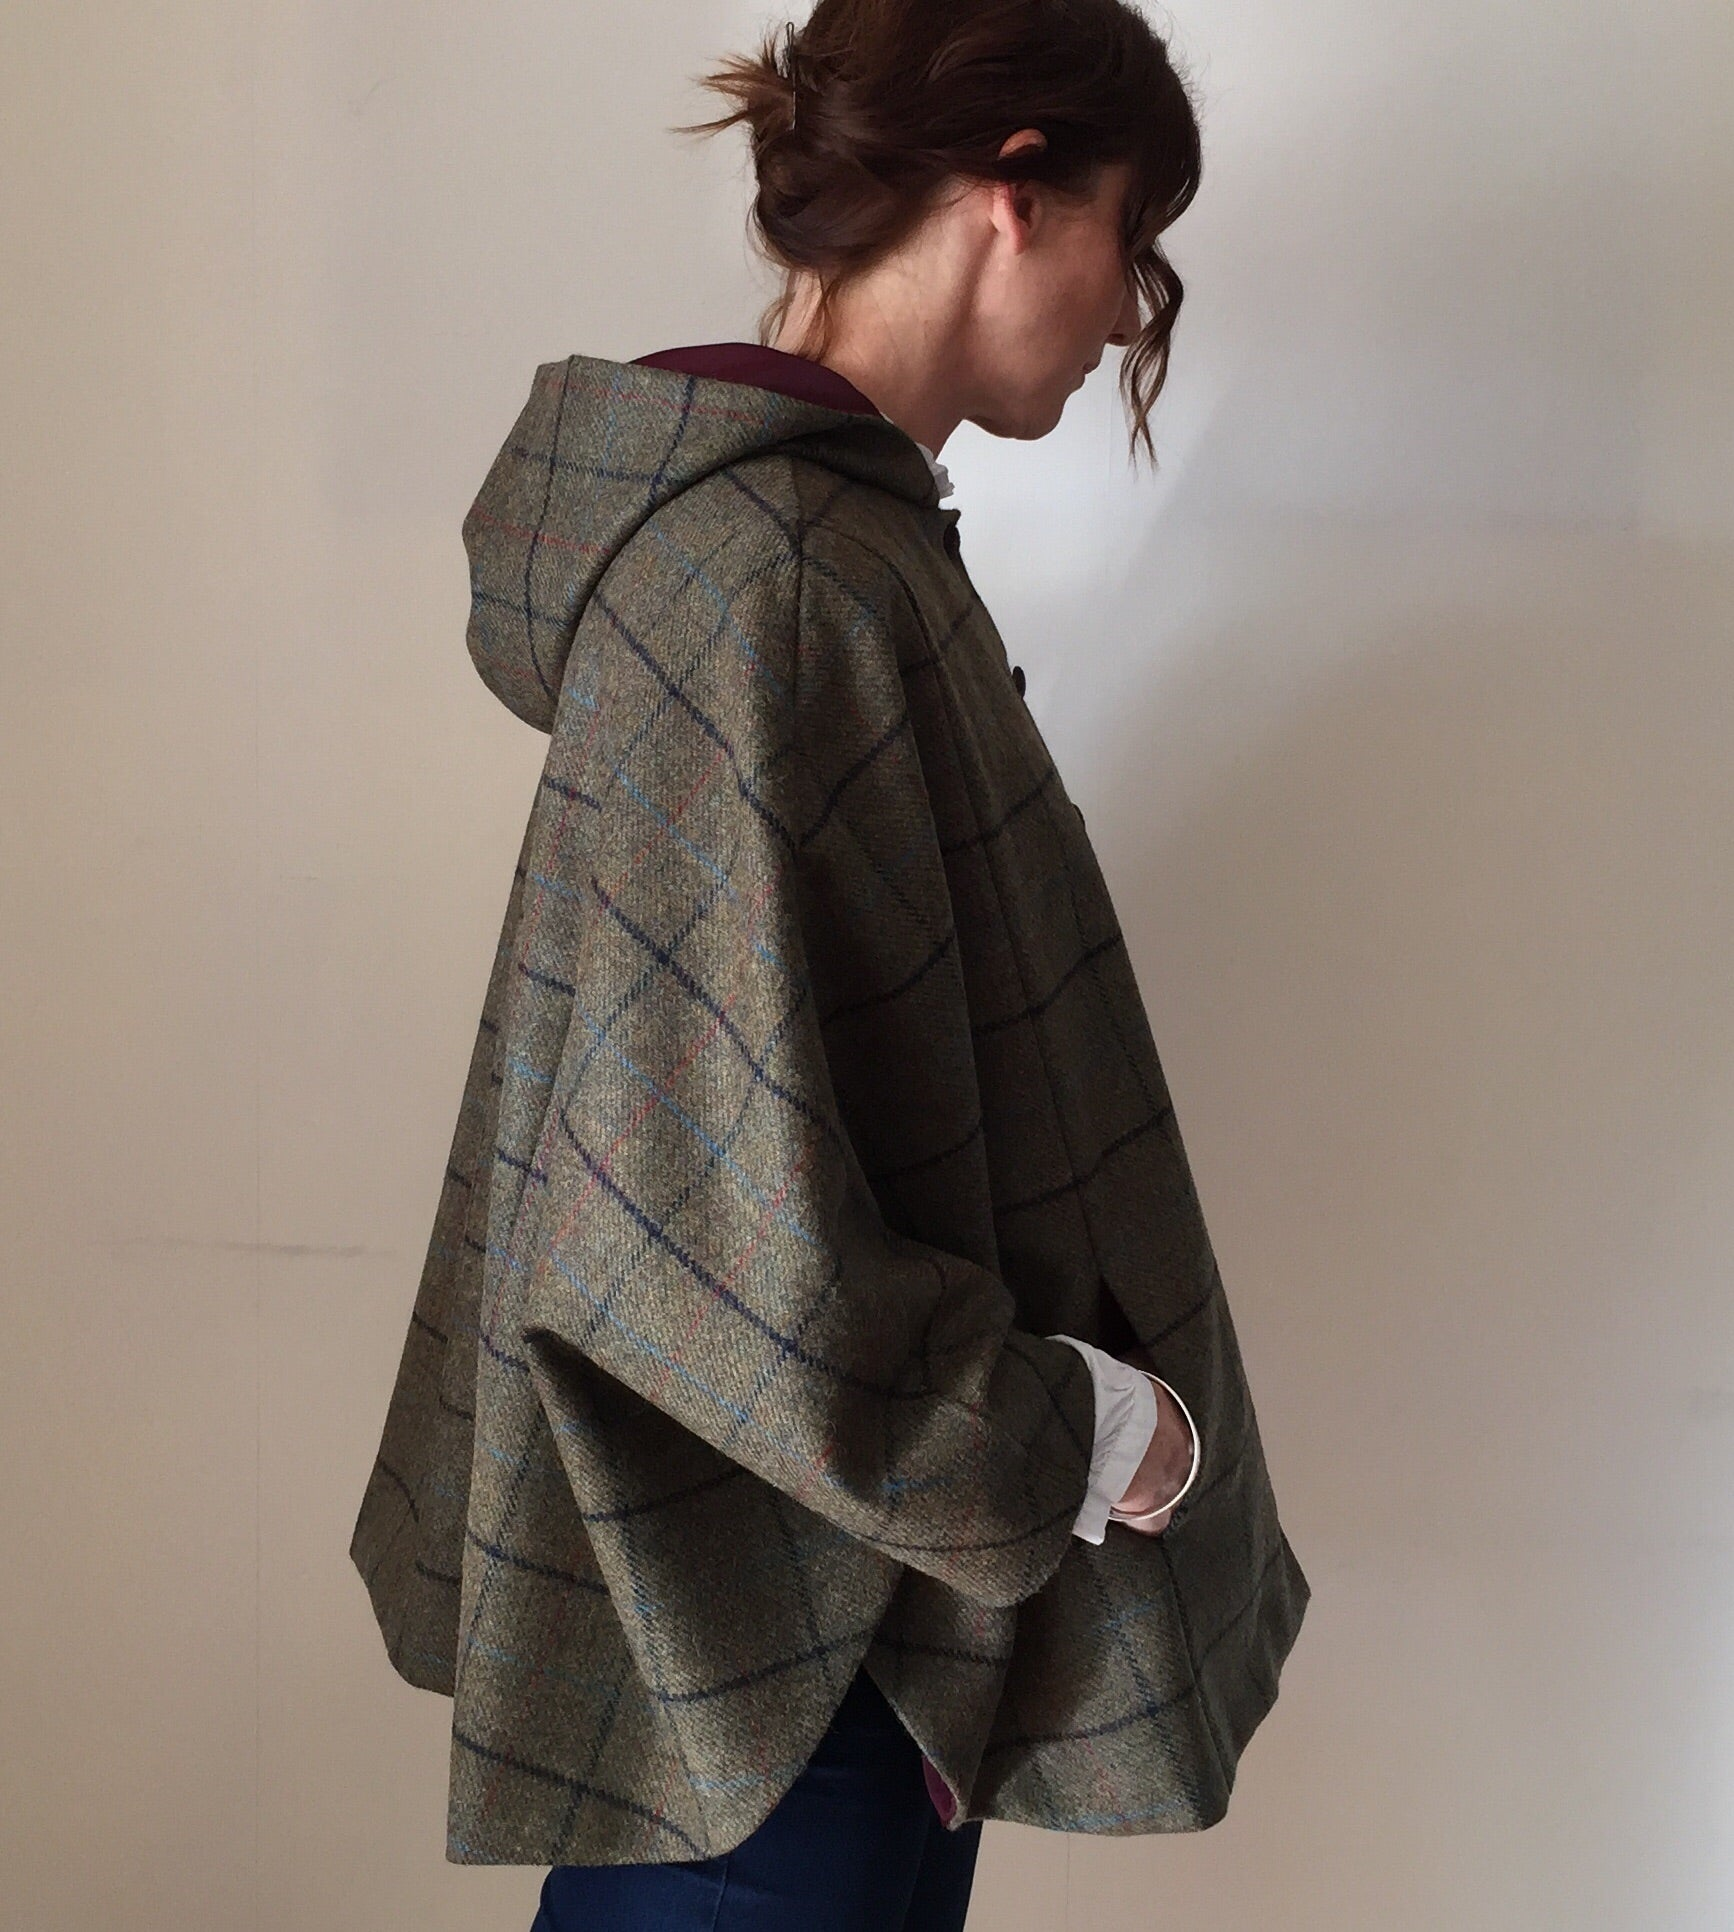 'Iris' Ladies 100% Shetland Wool checked hooded cape - Hand Made in England